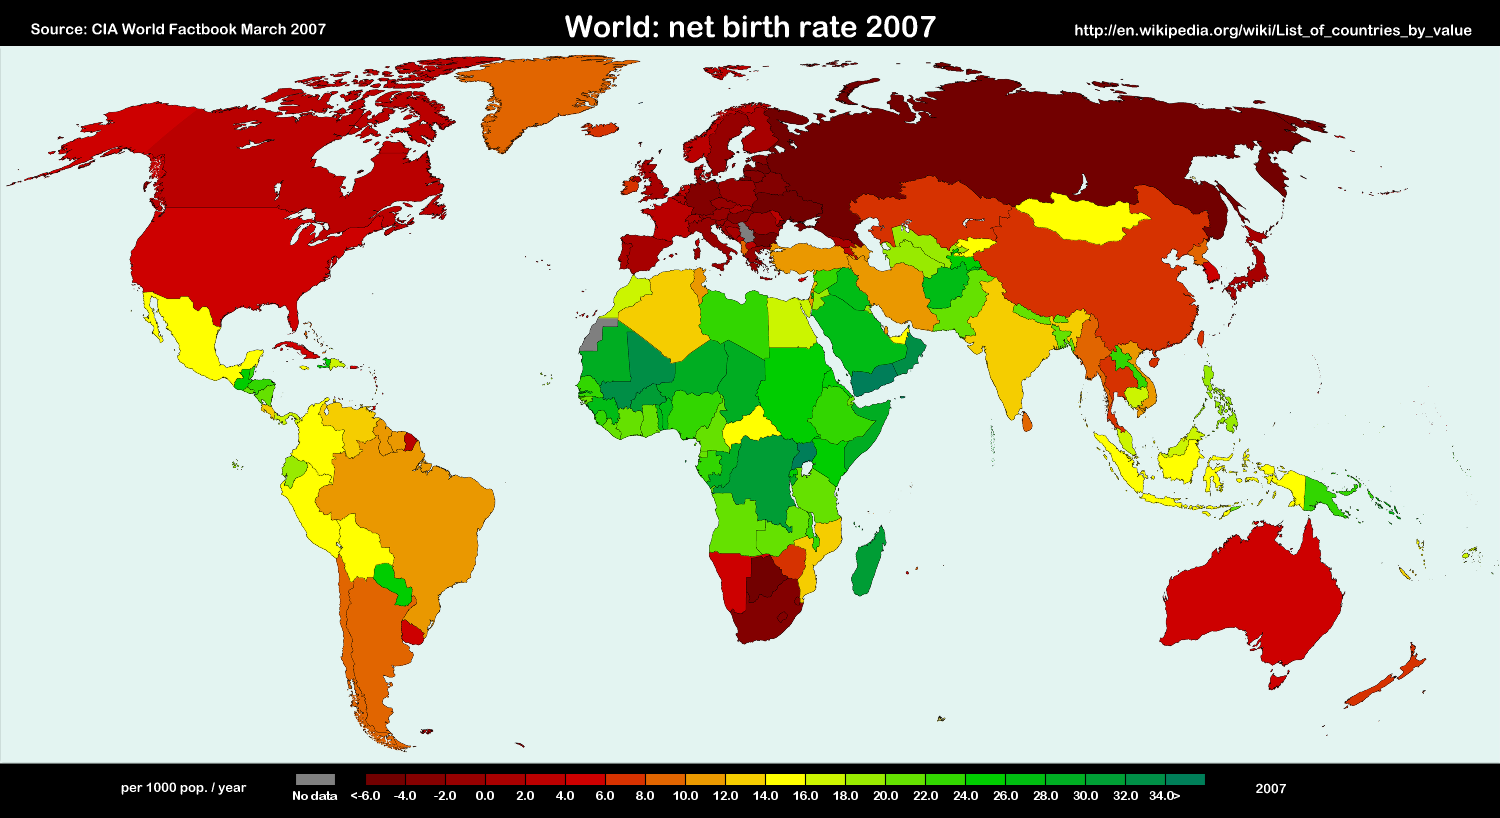 world_net_birth_rate_20071.png